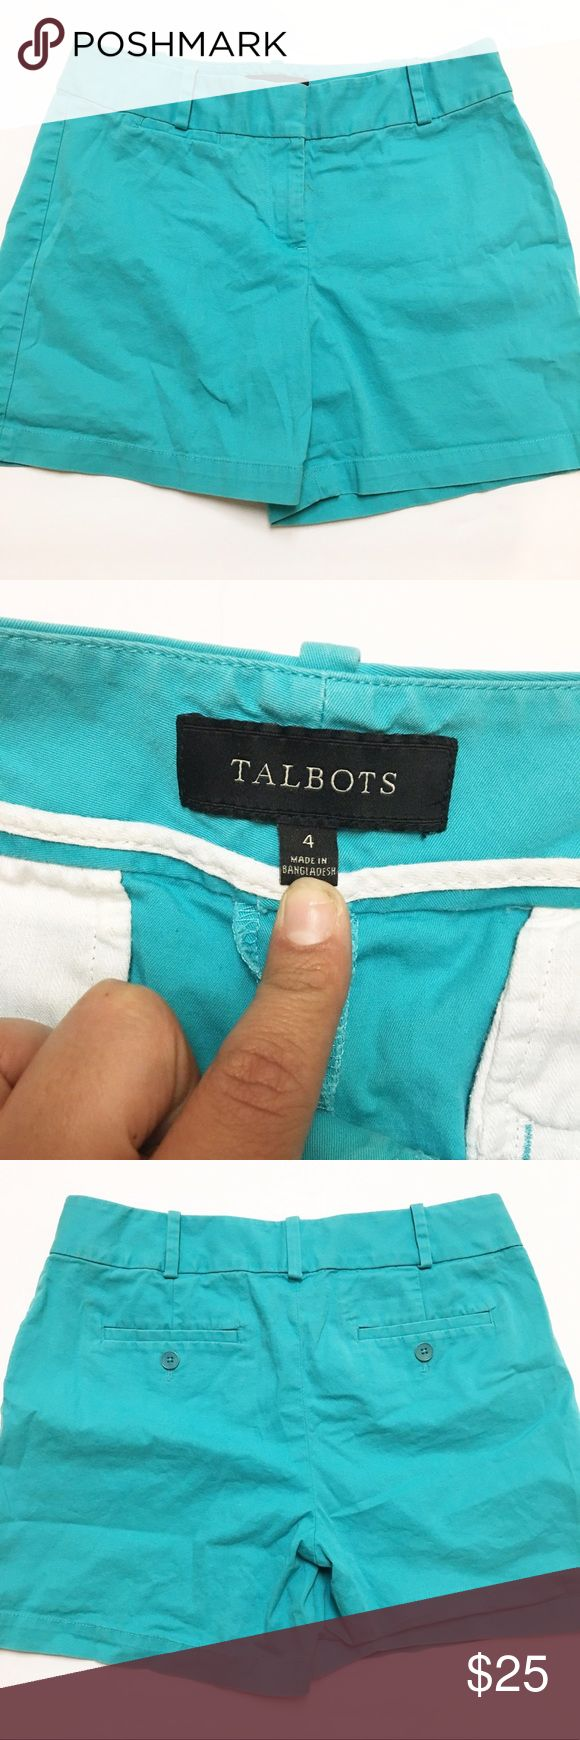 """Talbots Turquoise Khaki Shorts - Size: 4  - Material: Cotton/Spandex  - Condition: GUC, small mark near zipper  - Color: Turquoise  - Pockets: back, small pocket on front, stitched shut -Stretch: Yes   *Measurements:  Waist: 16"""" Rise:9"""" Inseam: 5"""" Leg Opening: 12""""    * Almost all my prices are negotiable and no offer offends me! * Talbots Shorts"""